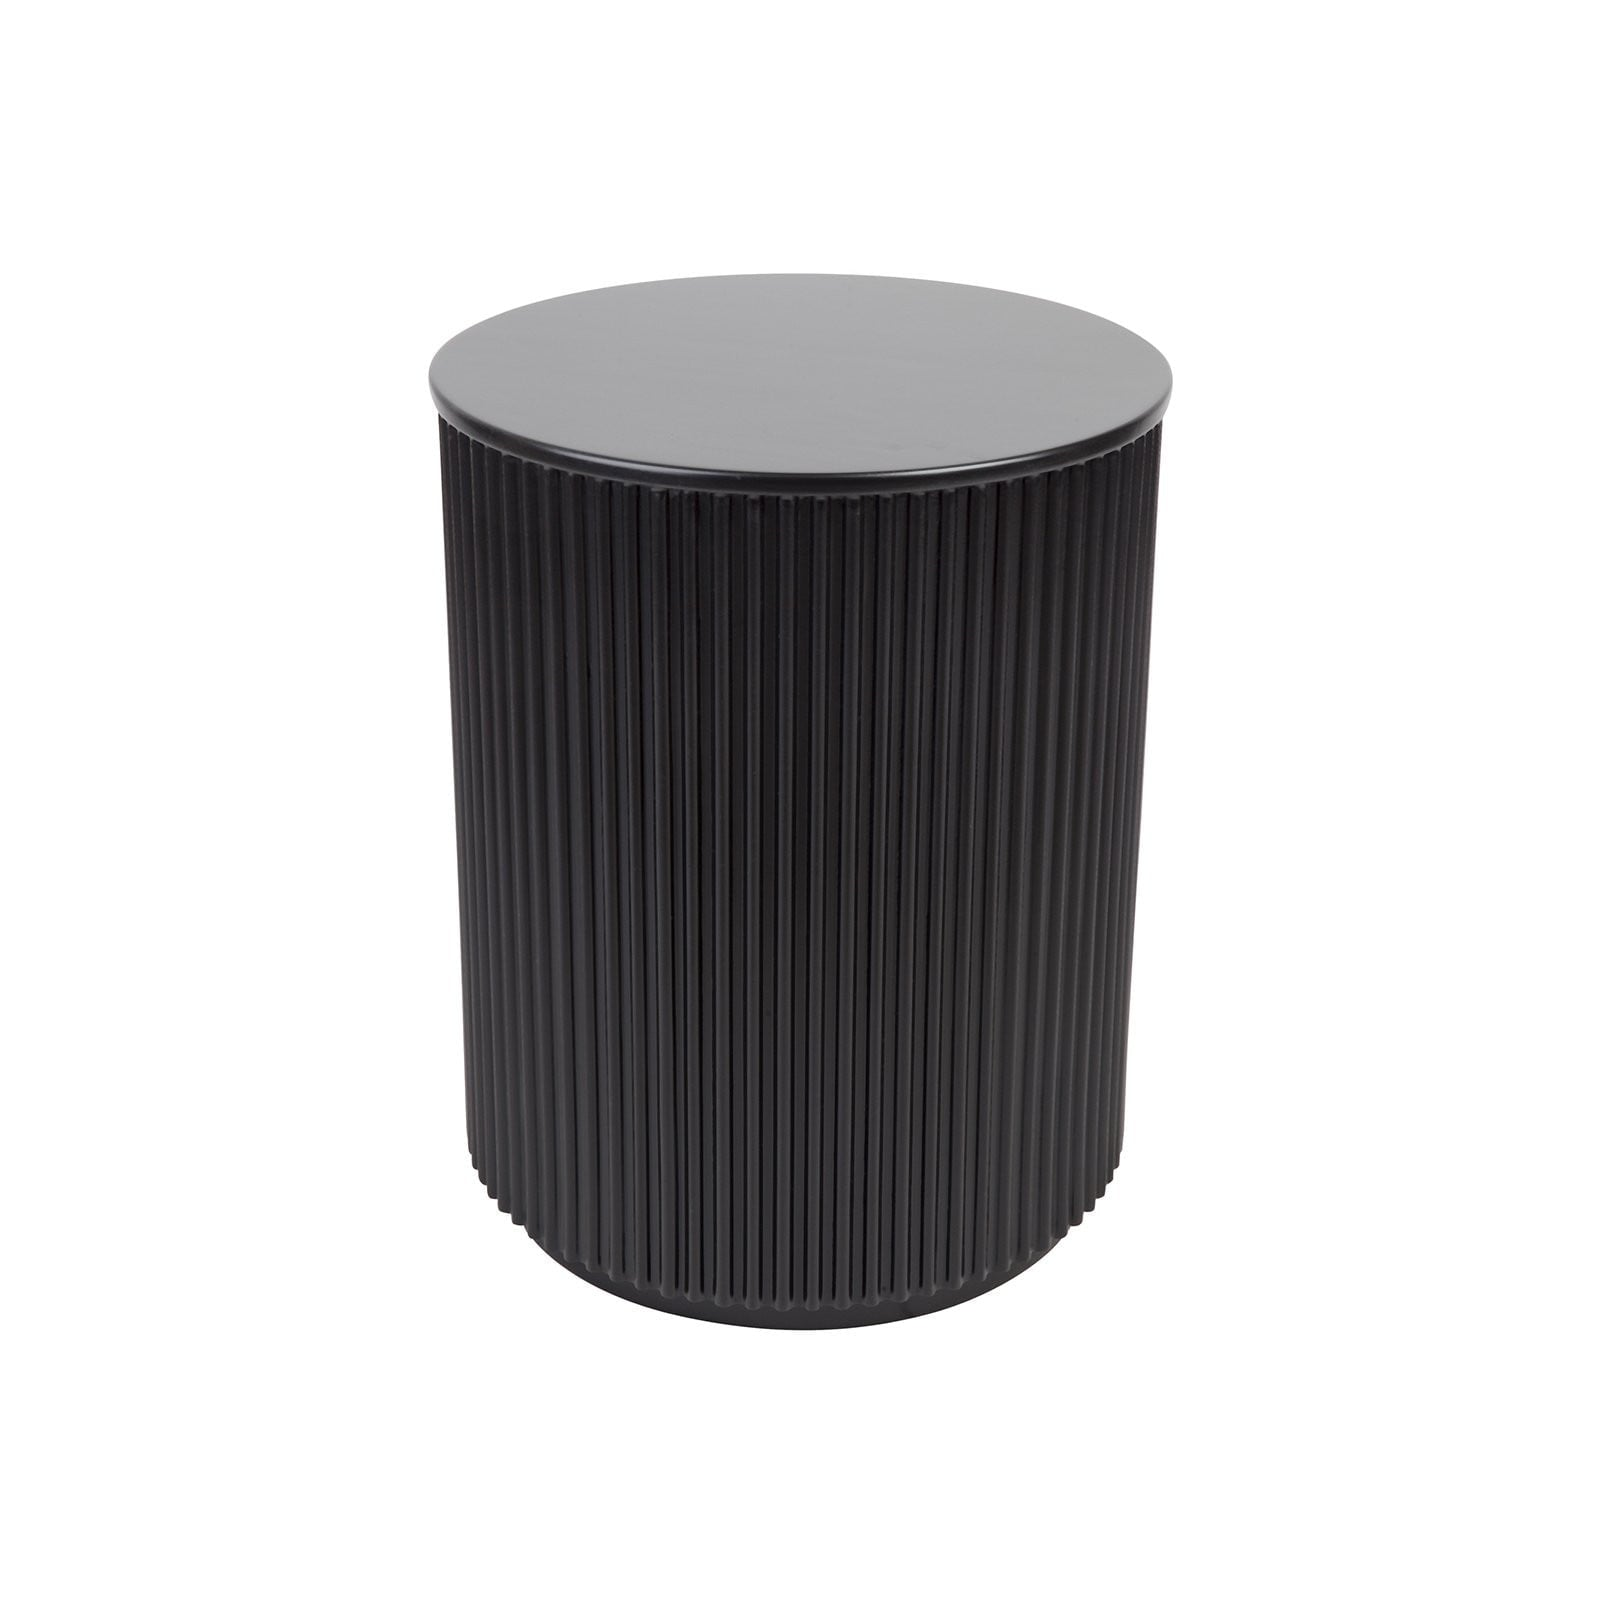 Nomad Black Round Side Table | Attica House Luxury Furniture Sydney